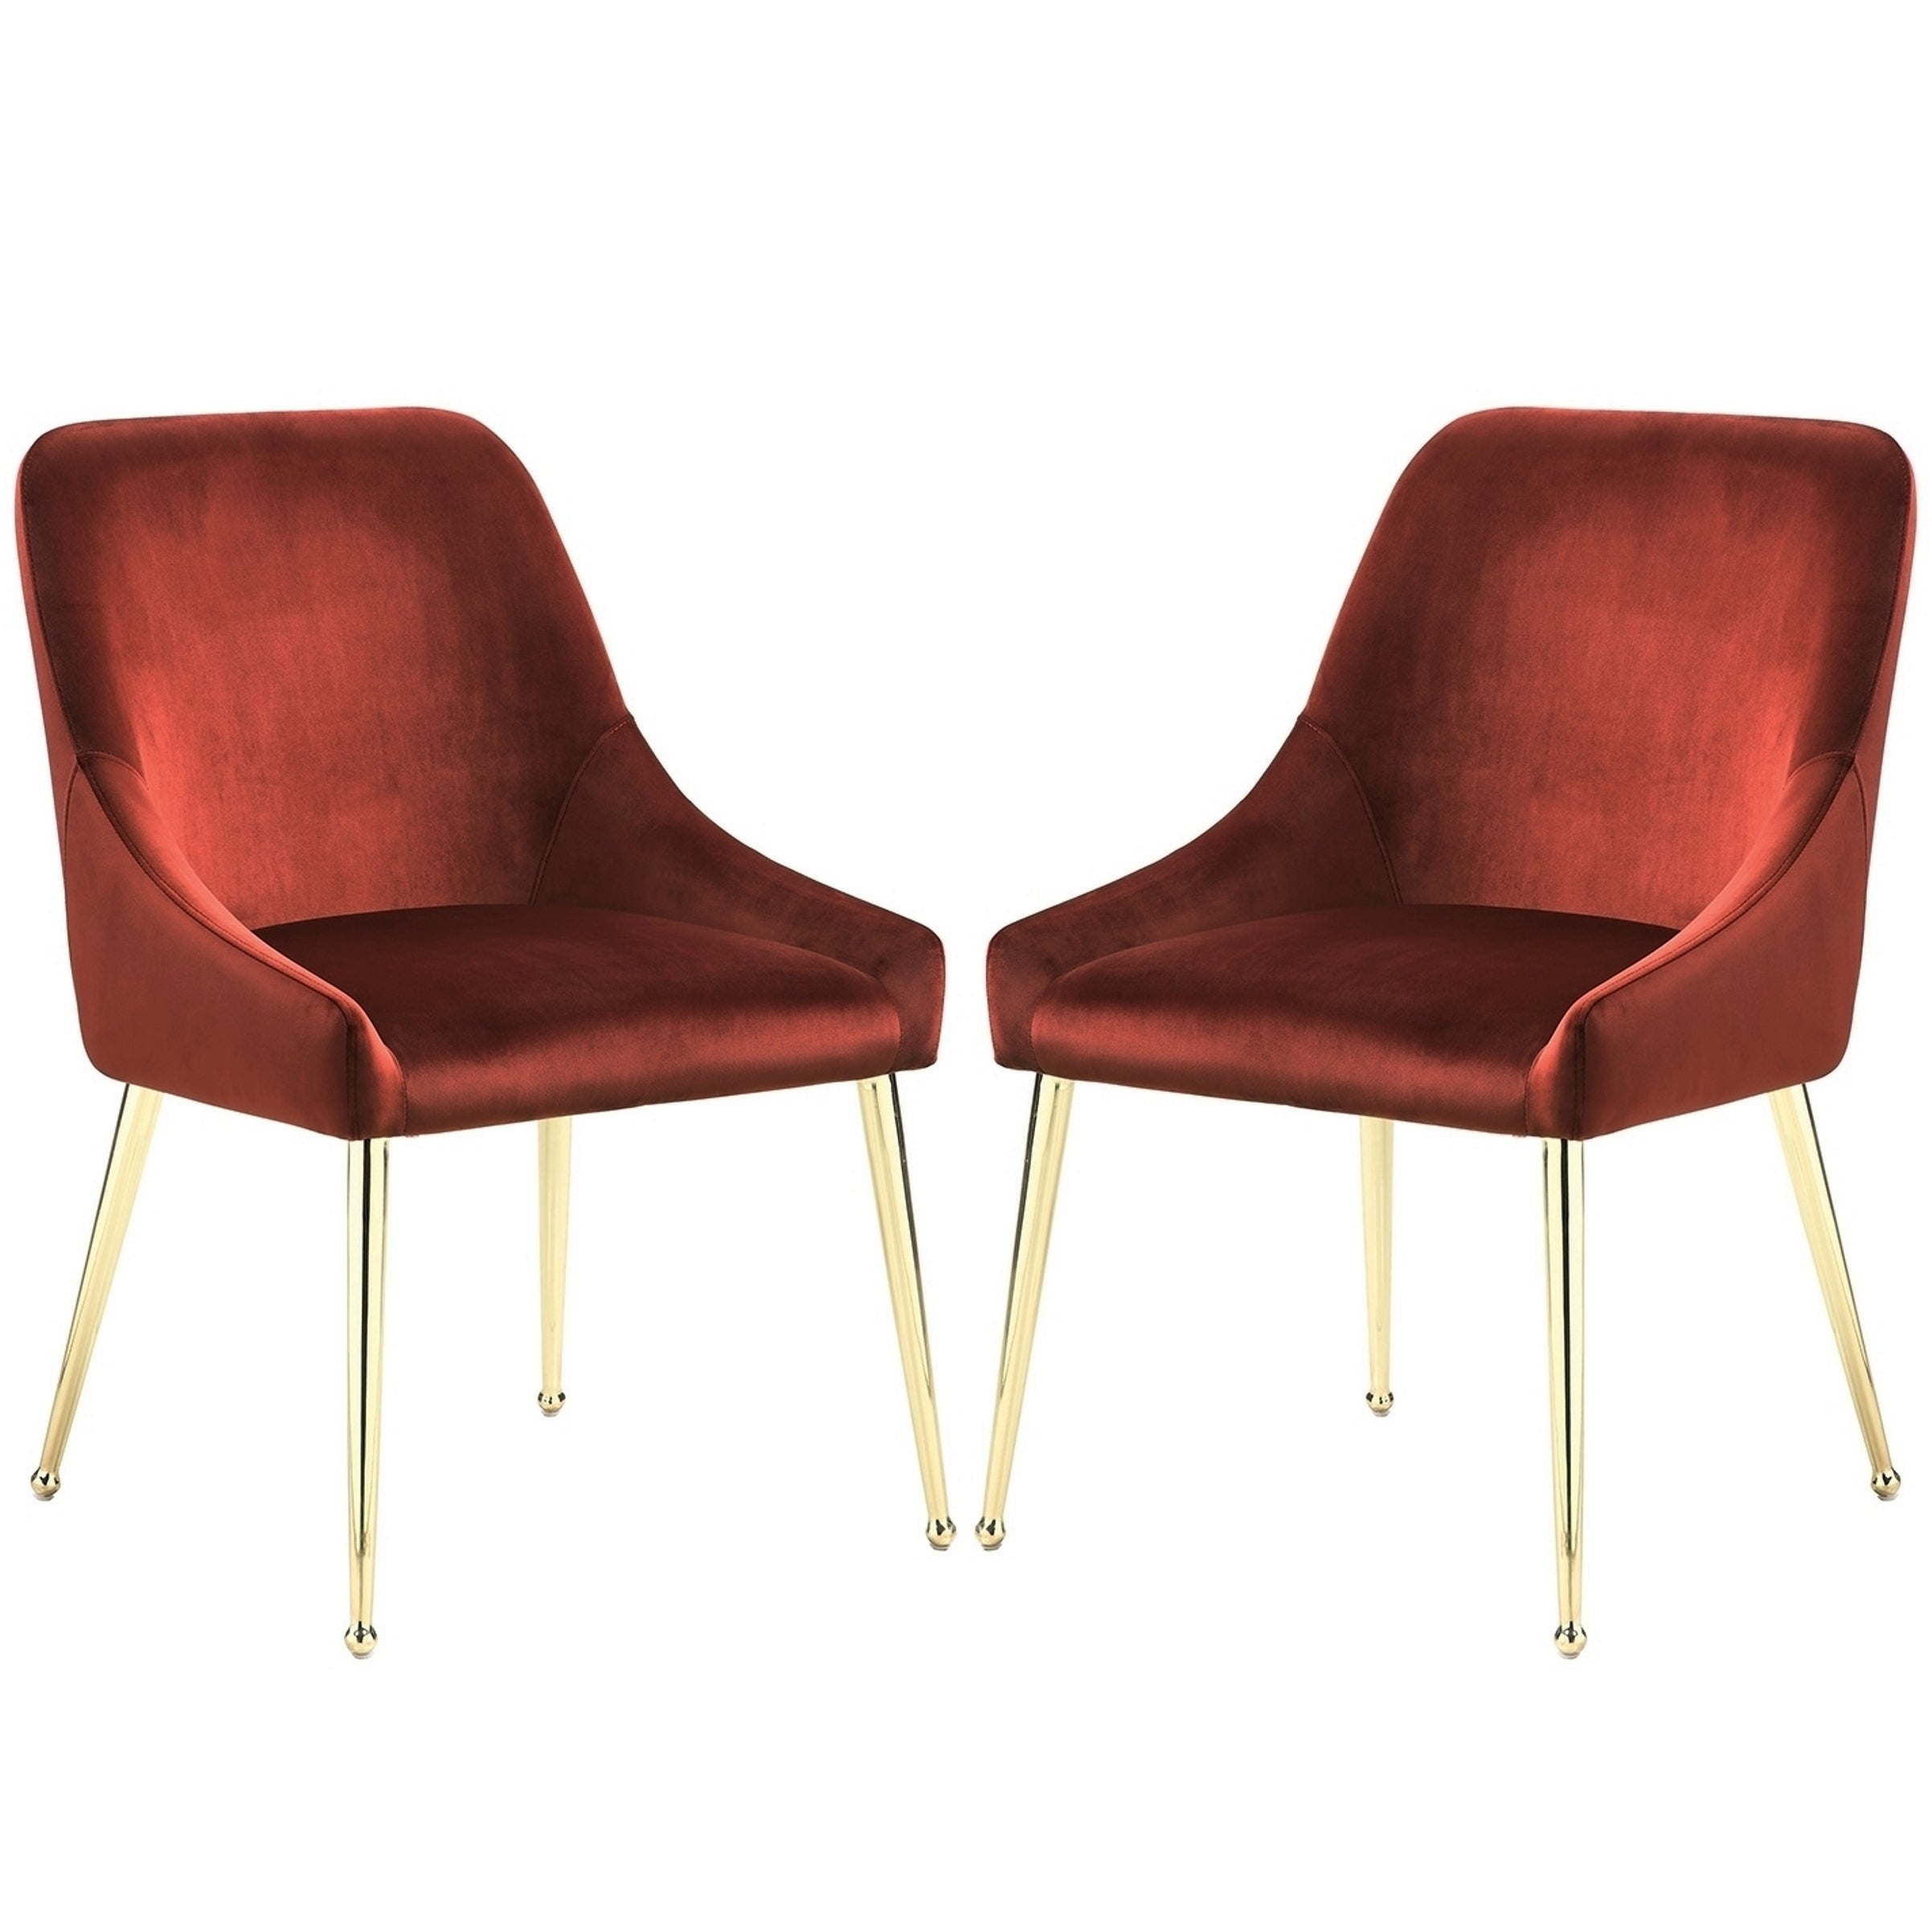 Mid Century Italian Design Clic Red Velvet Dining Chairs With Br Legs Set Of 2 Free Shipping Today 24115701